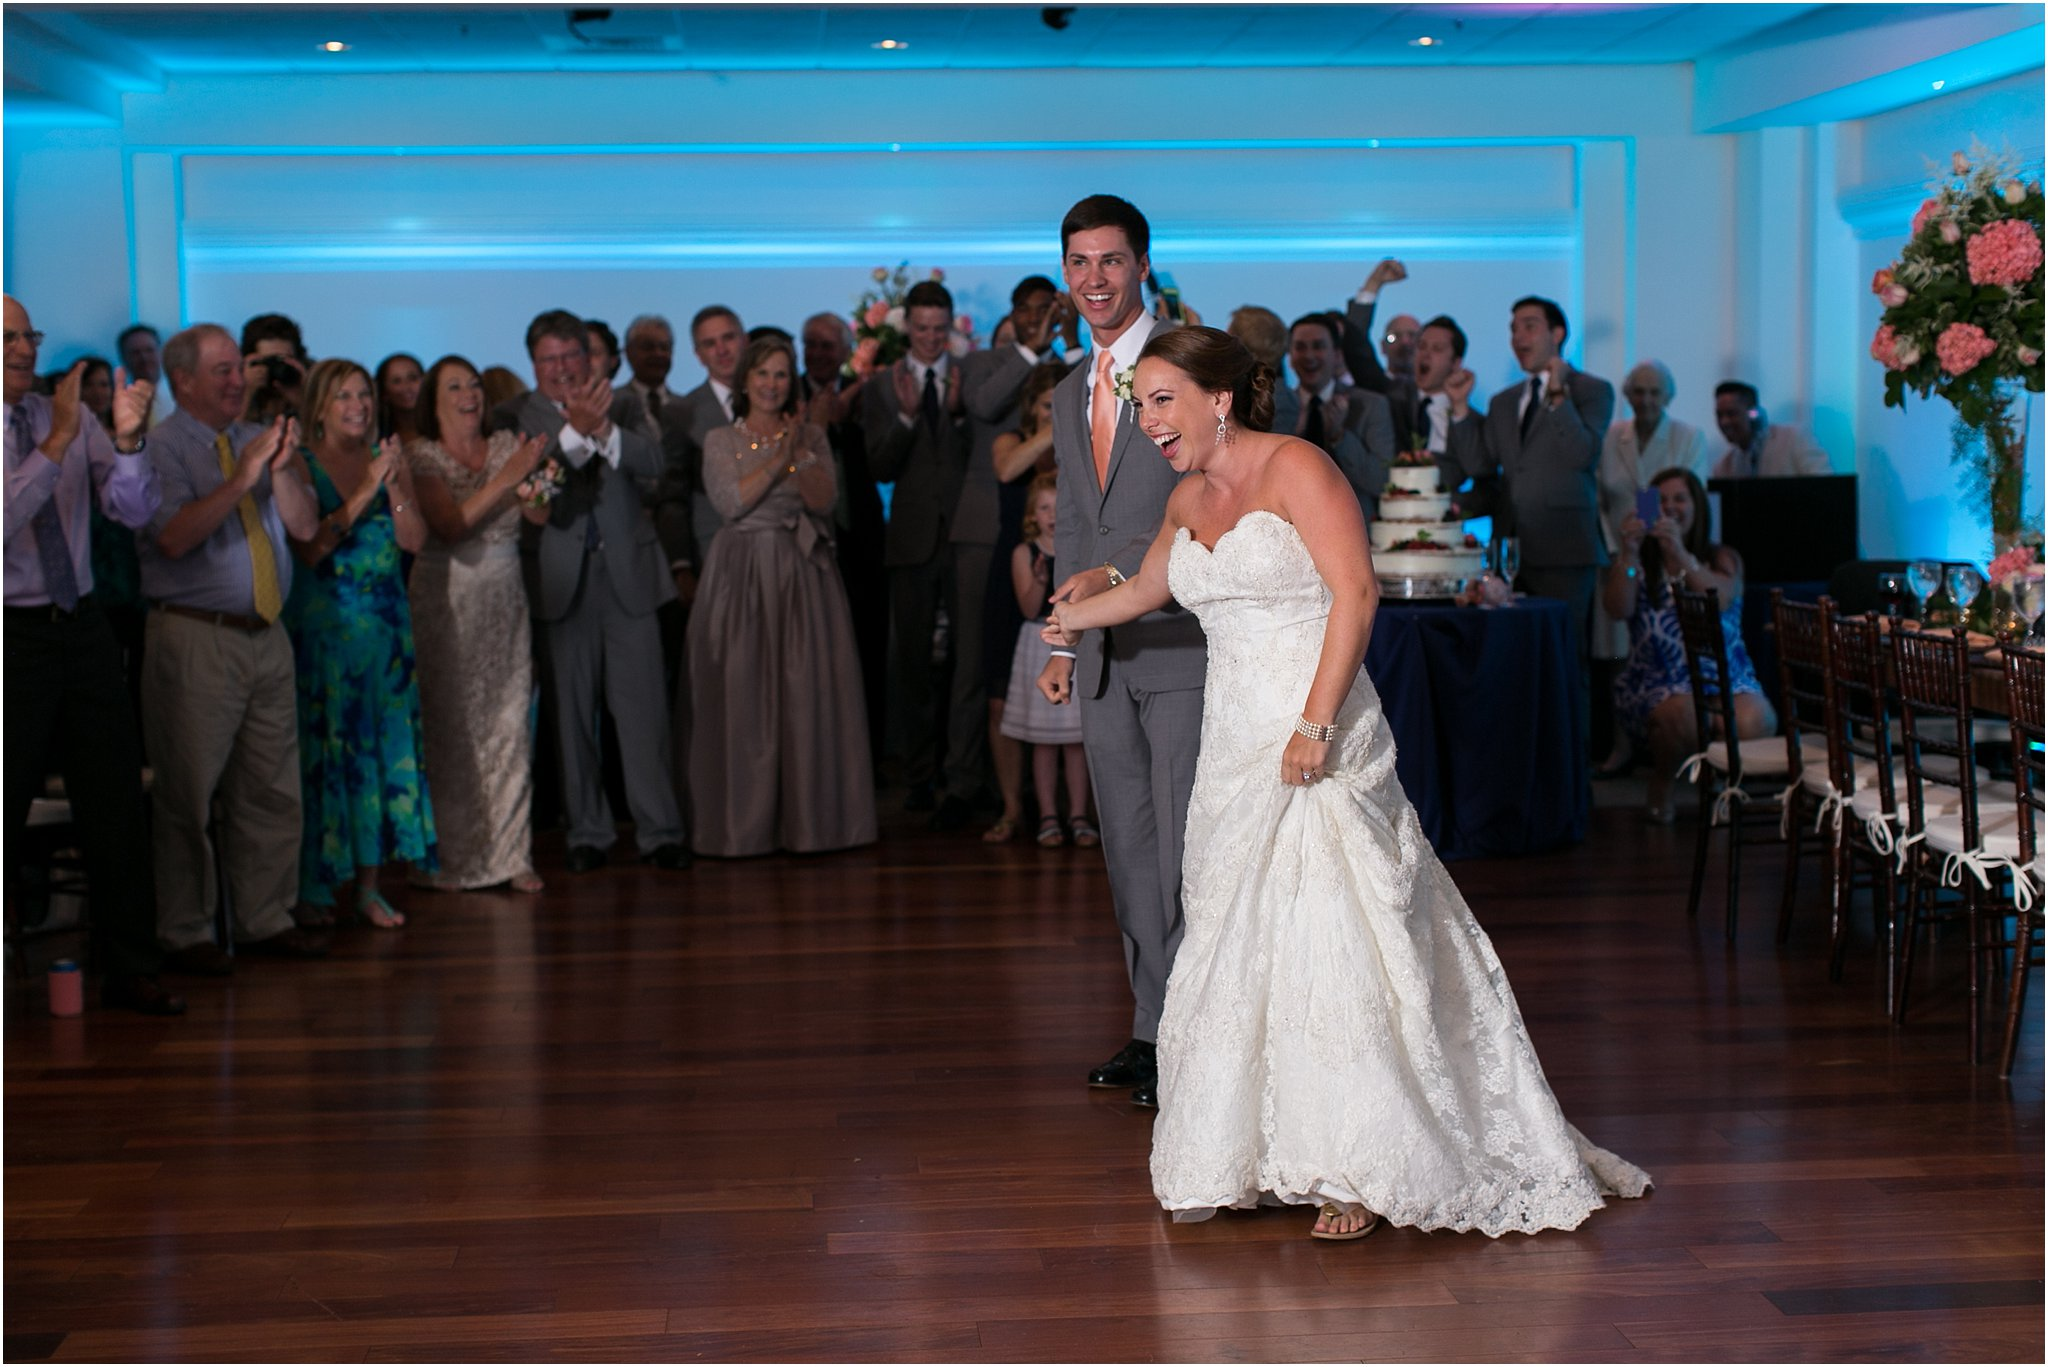 jessica_ryan_photography_wedding_photography_virginiabeach_virginia_candid_authentic_wedding_portraits_marina_shores_yacht_club_chesapeake_bay_1940